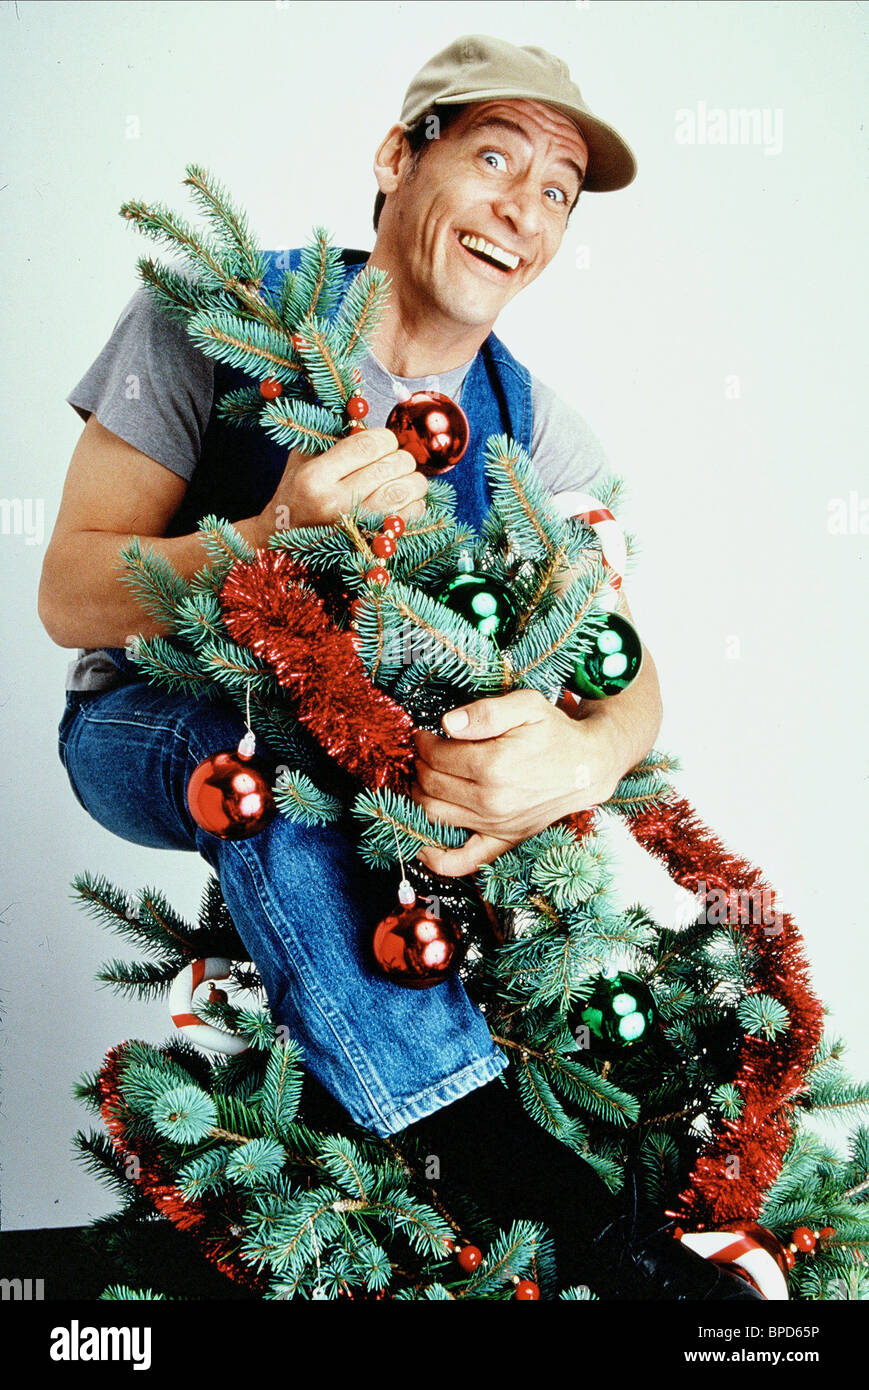 JIM VARNEY ERNEST SAVES CHRISTMAS (1988 Stock Photo, Royalty Free ...